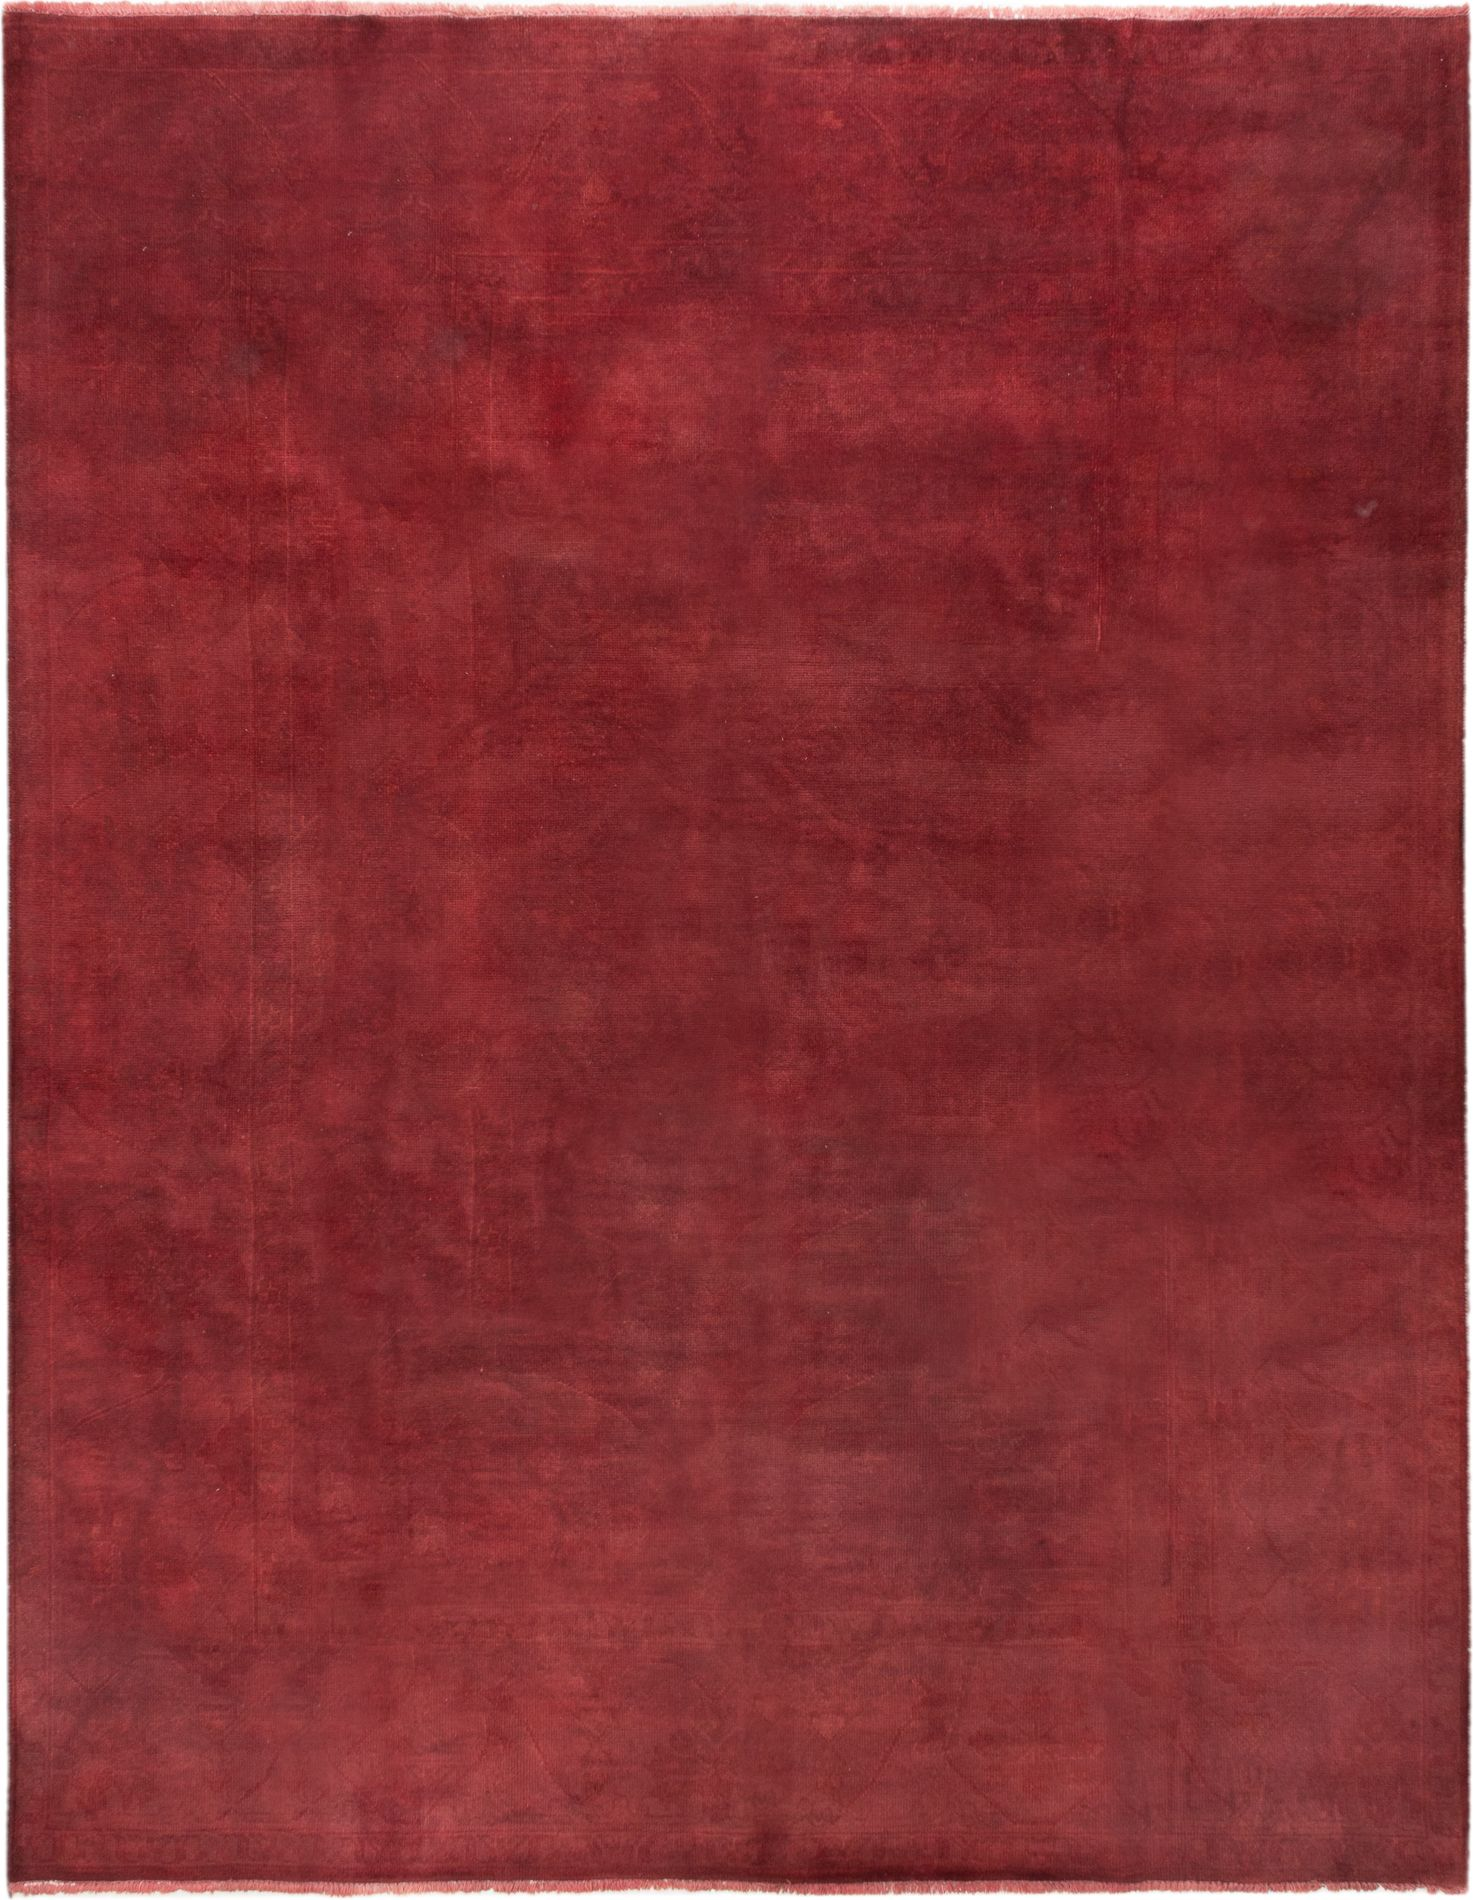 "Hand-knotted Color transition Burgundy Wool Rug 9'2"" x 11'8"" Size: 9'2"" x 11'8"""